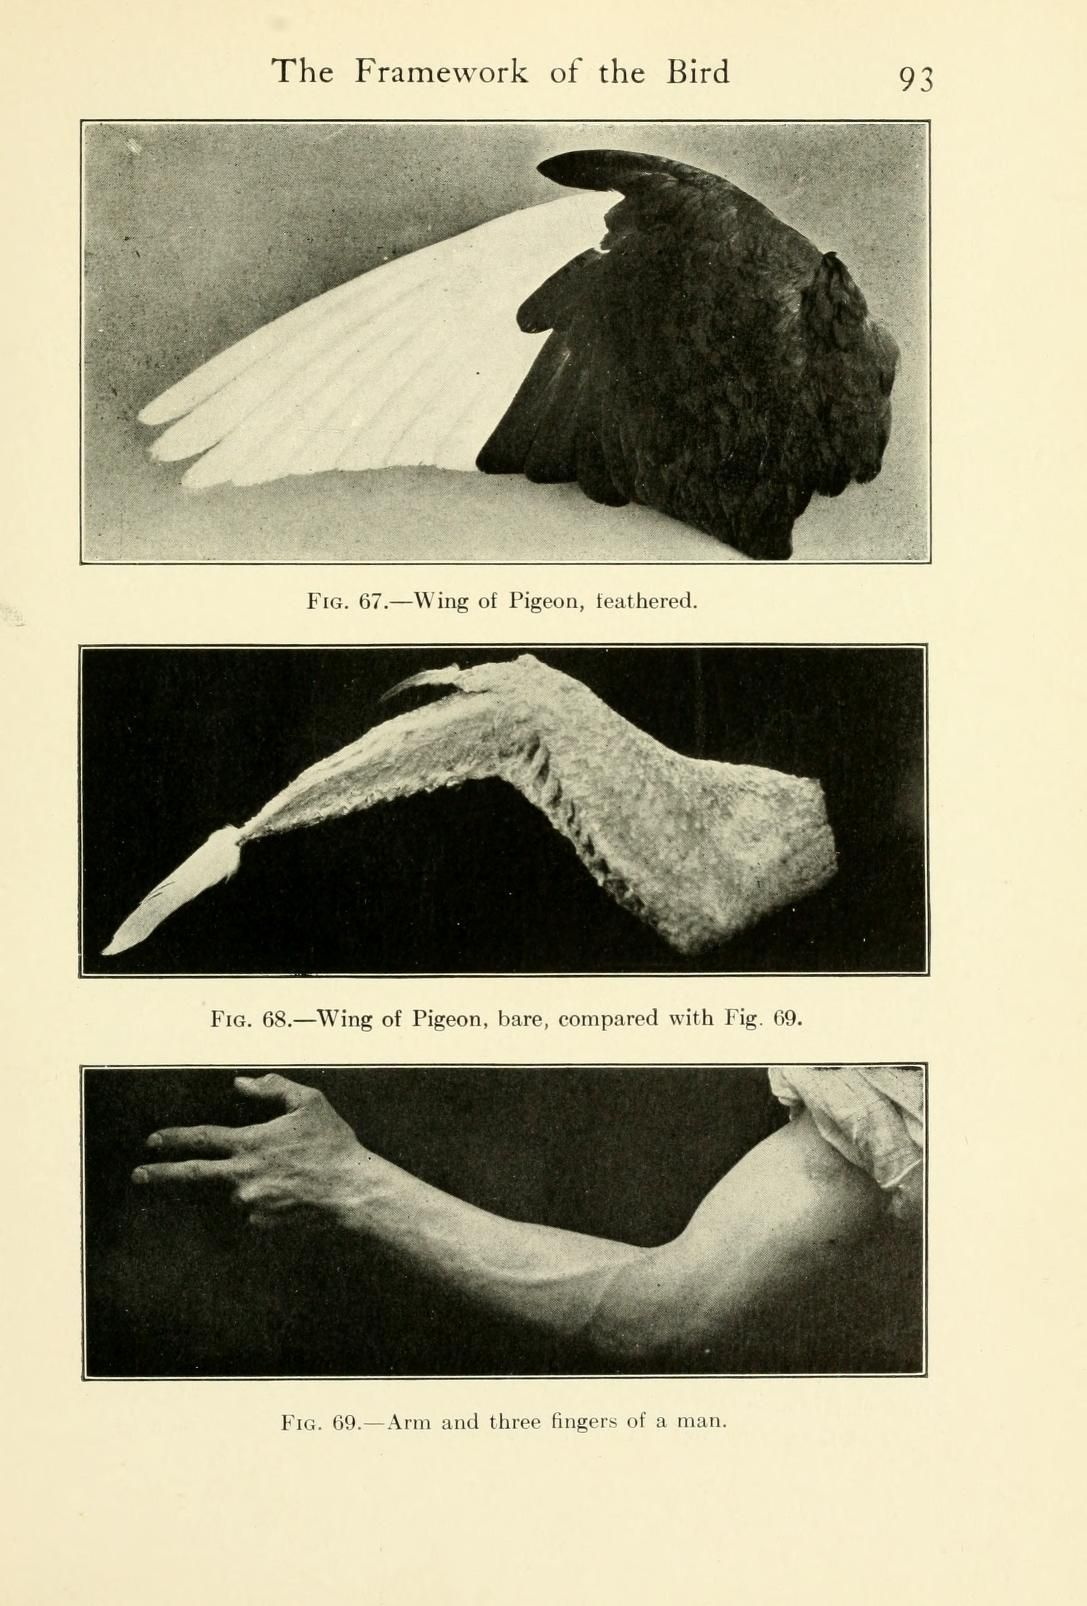 The bird; its form and function : Beebe, William, 1877-1962 : Free Download, Borrow, and Streaming : Internet Archive